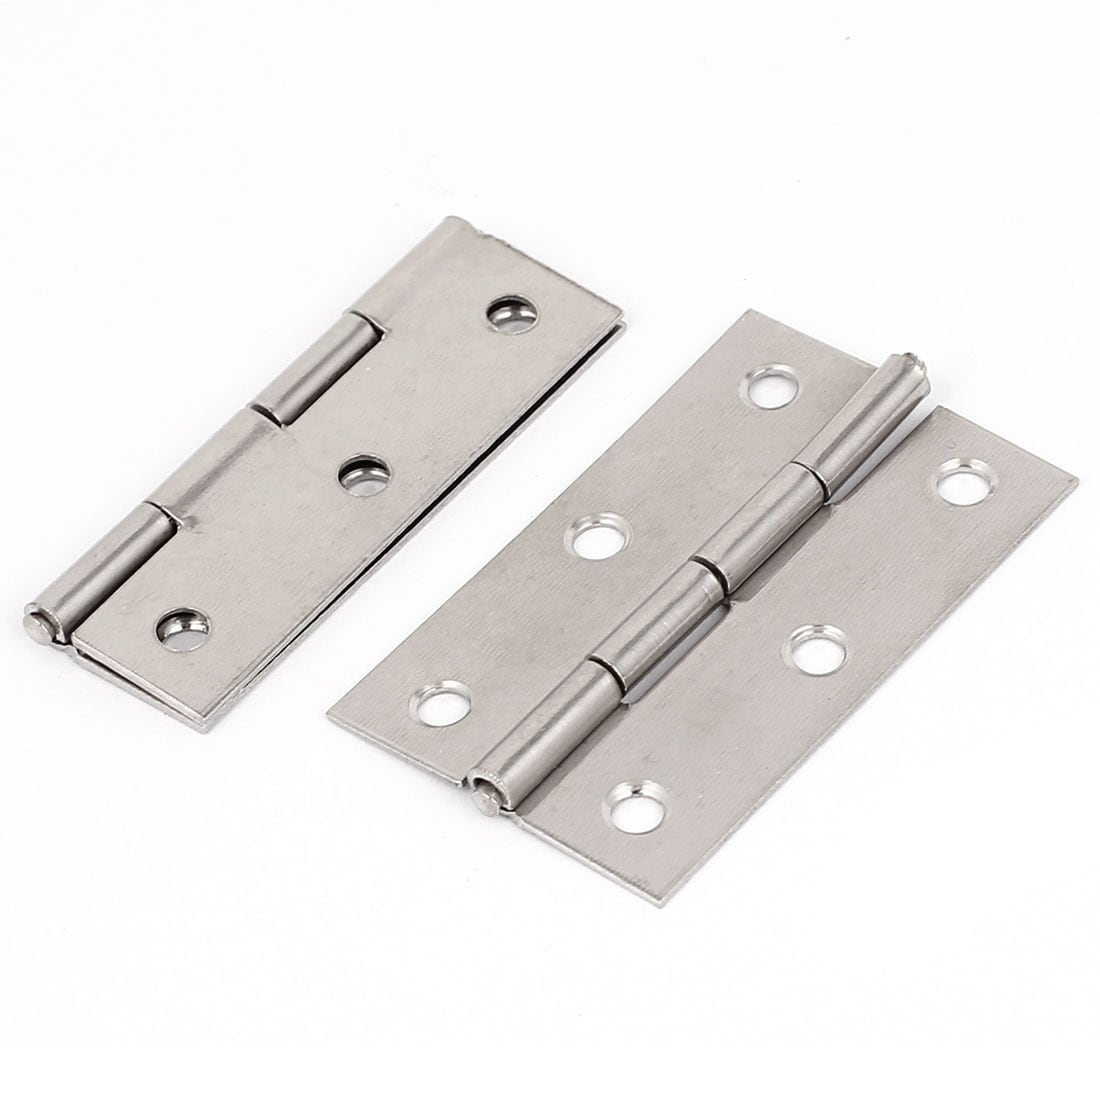 Shop cupboard cabinet furniture hardware gate folding door butt hinges 2pcs free shipping on orders over 45 overstock com 18191932